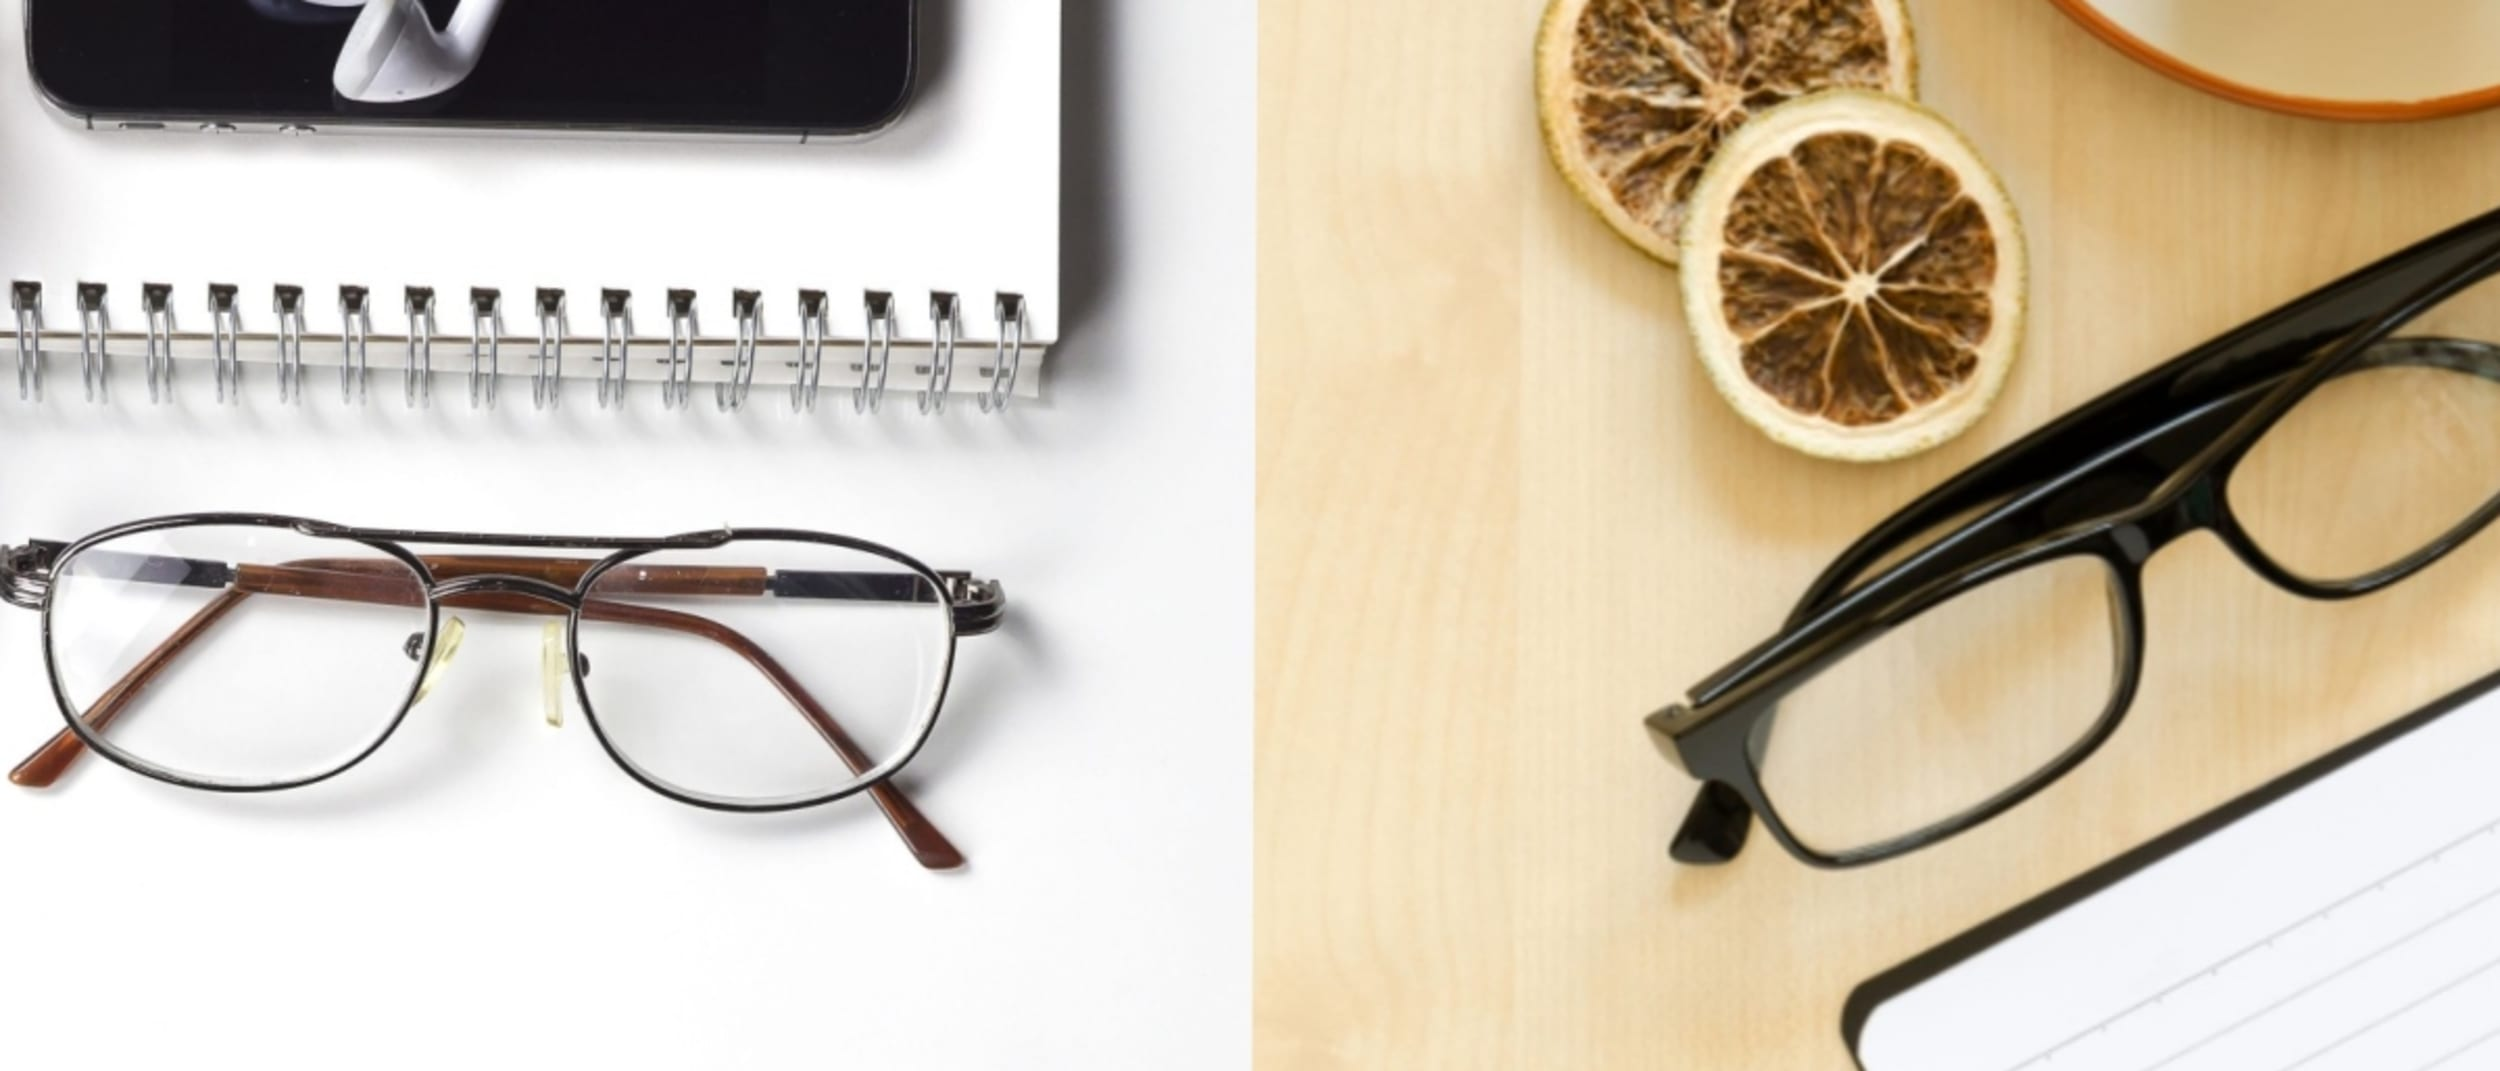 LensPro: Purchase new glasses & get 2nd pair free